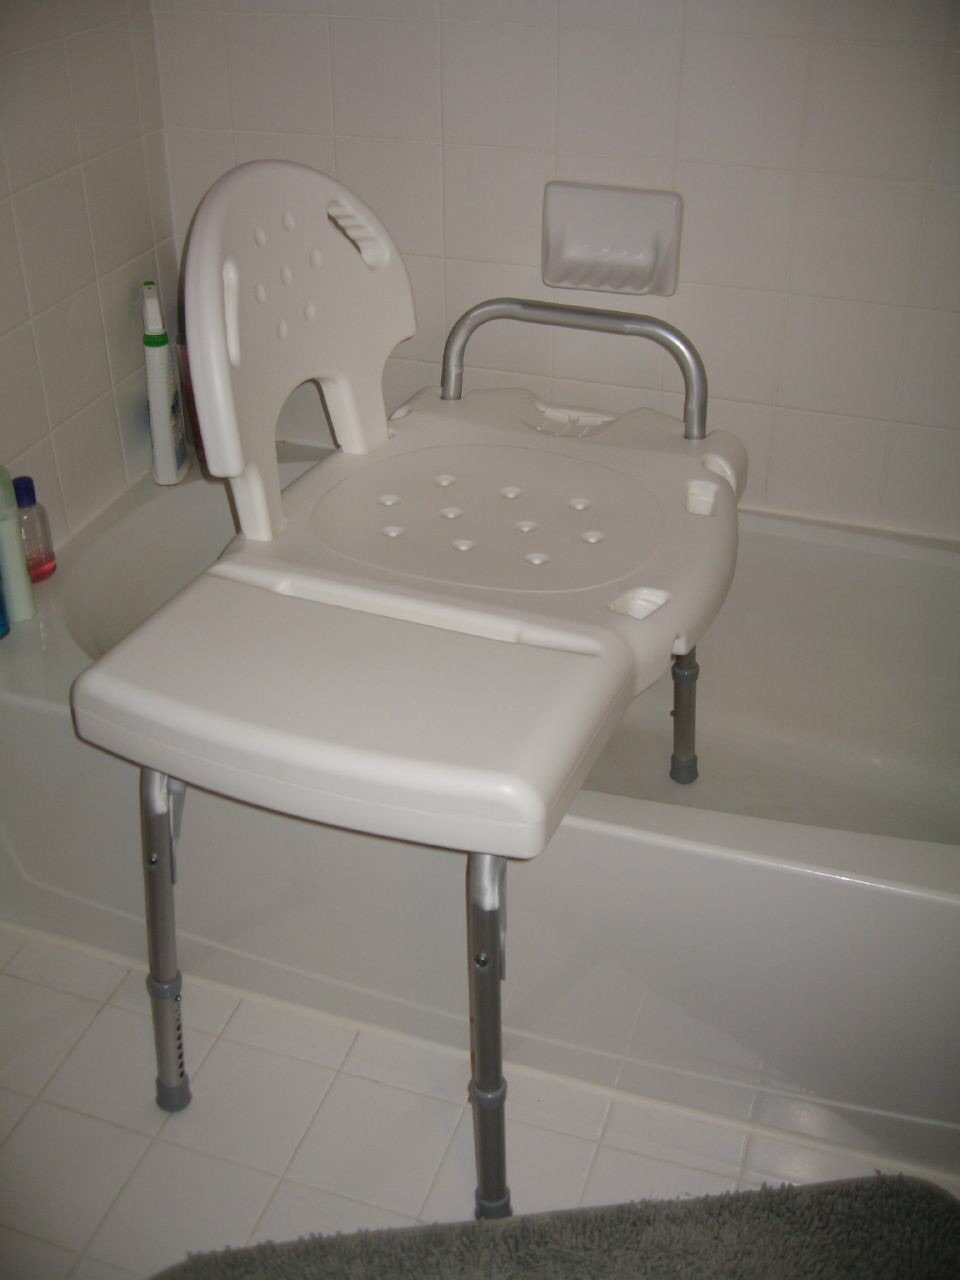 Extended Tub Bench 28 Images Extended Tub Bench